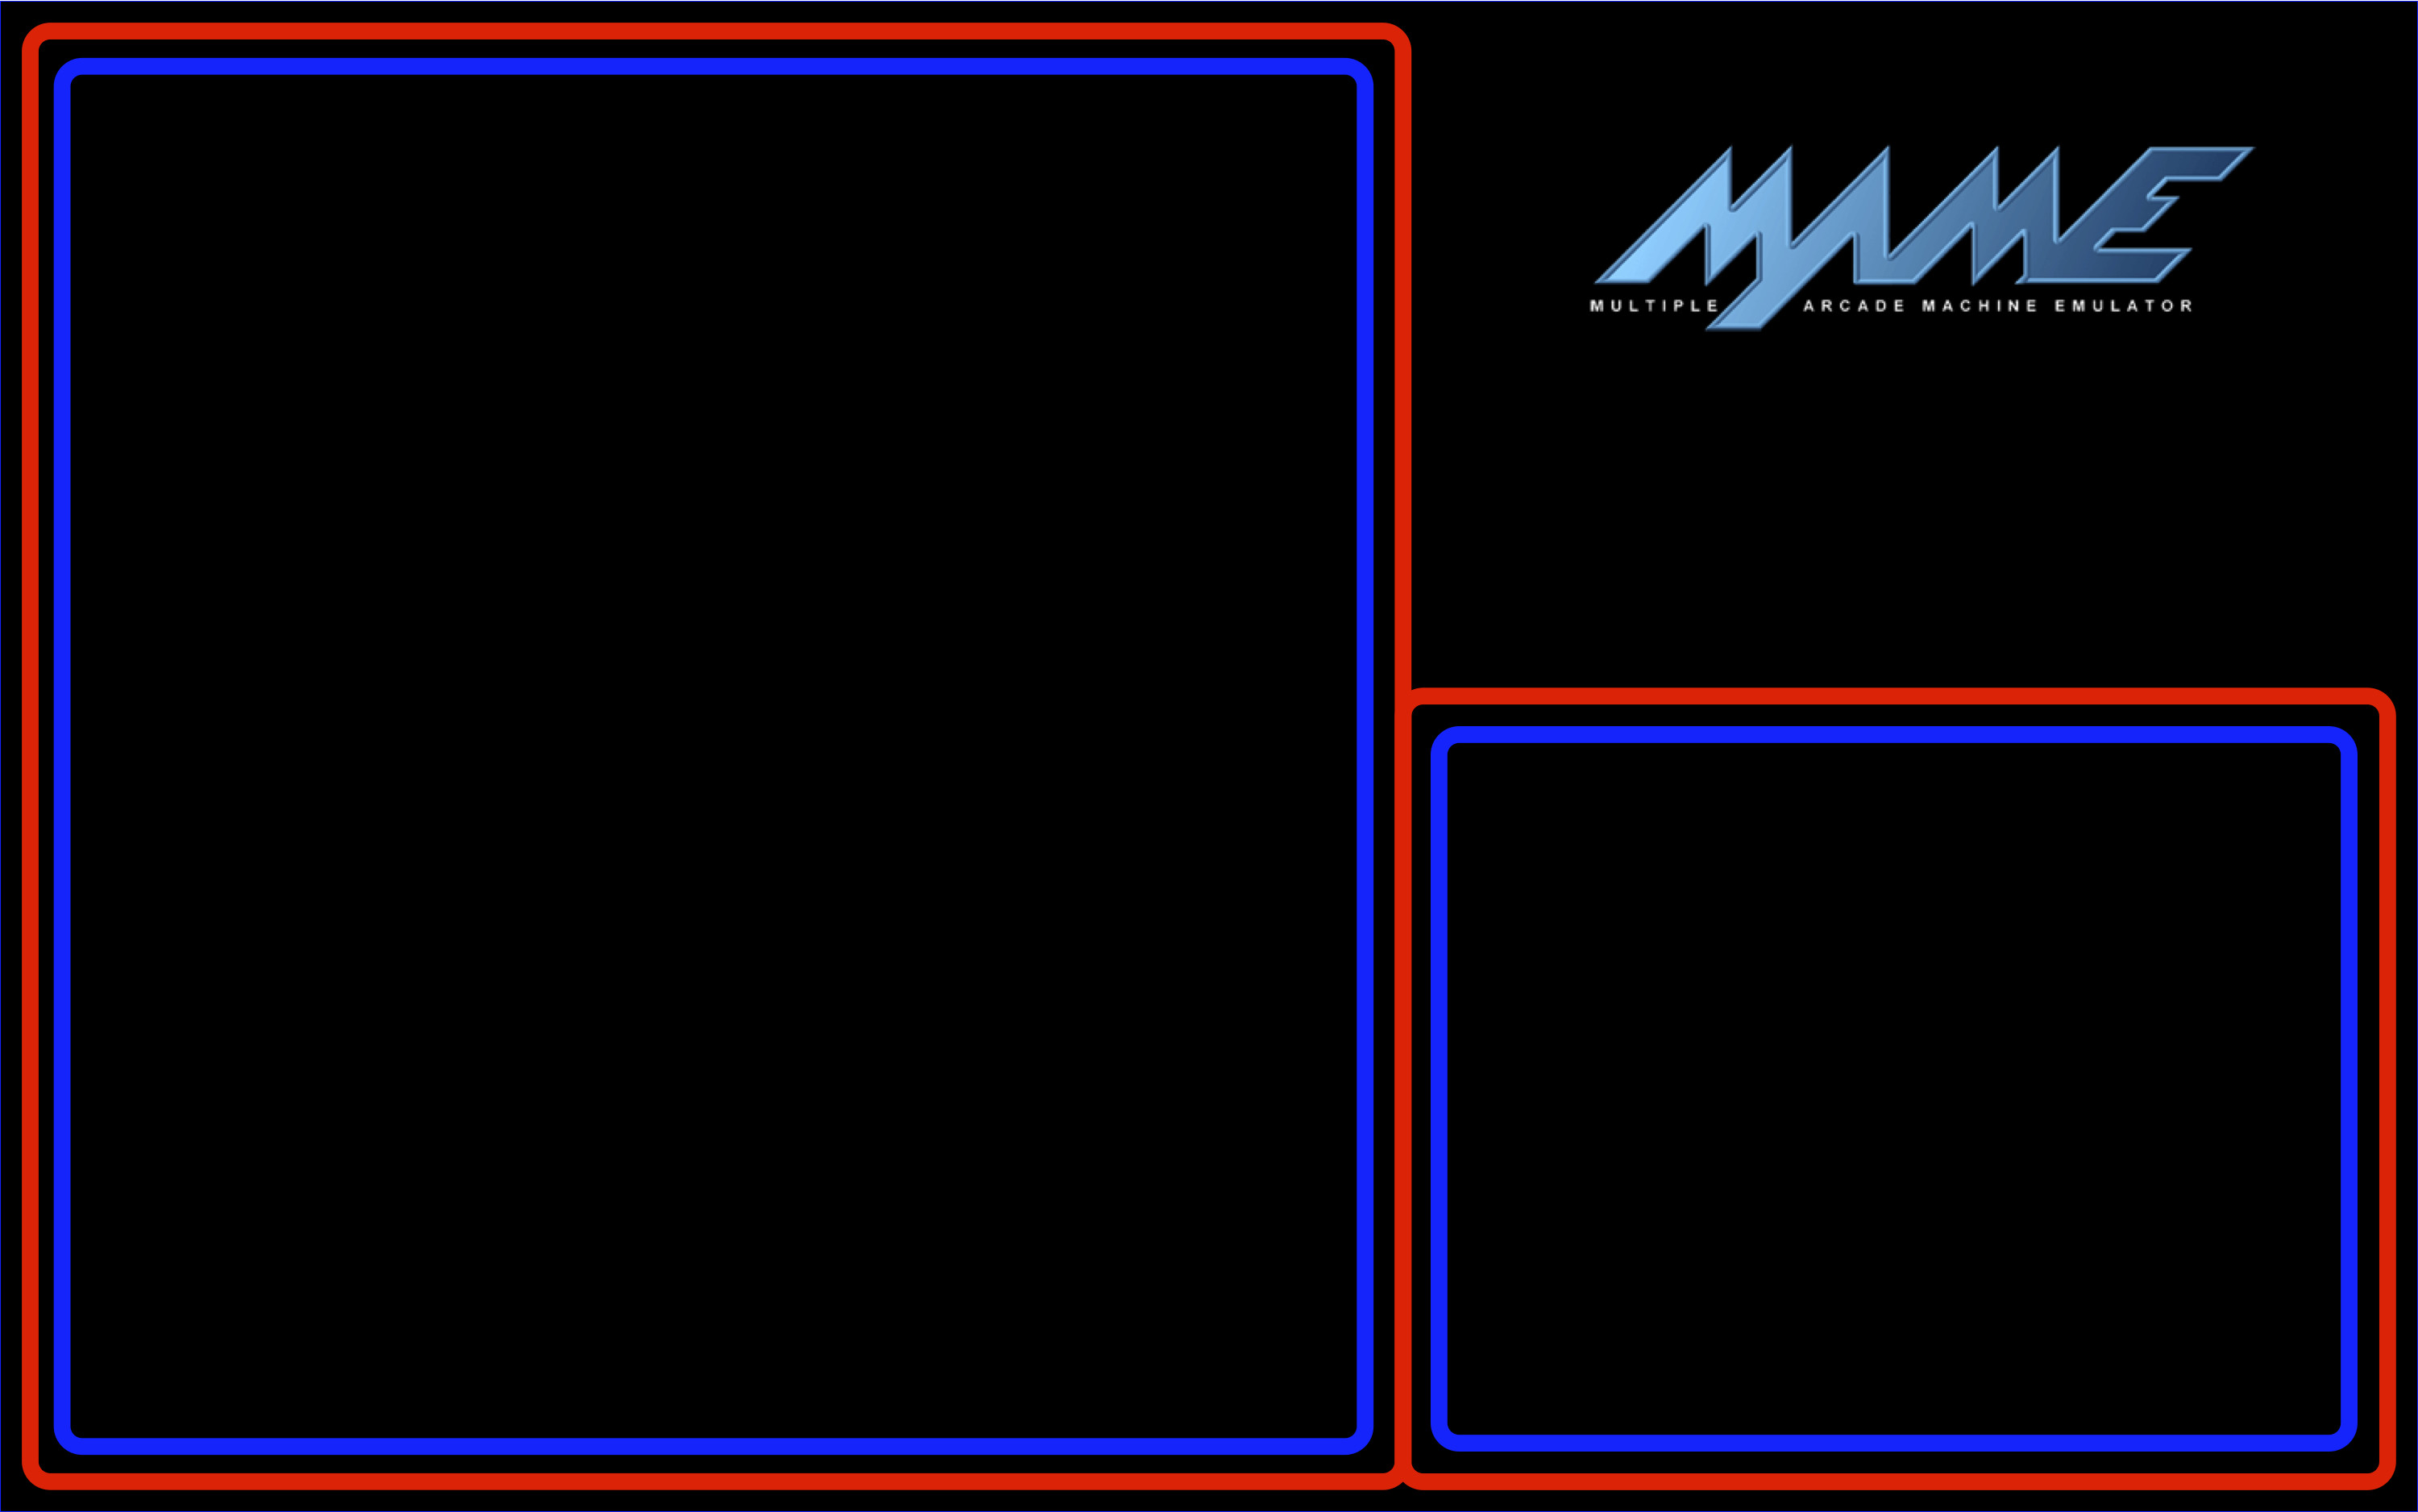 Mame Backgrounds (80+ images).